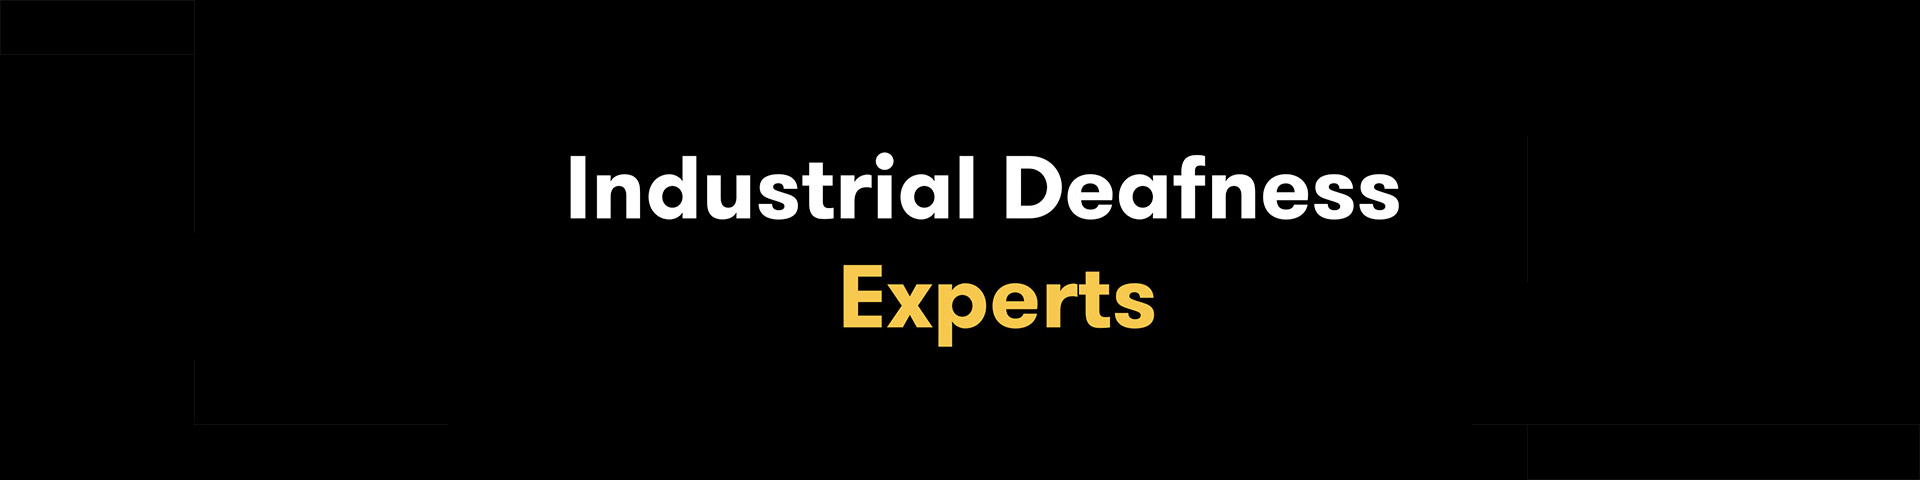 Industrial Deafness Lawyers